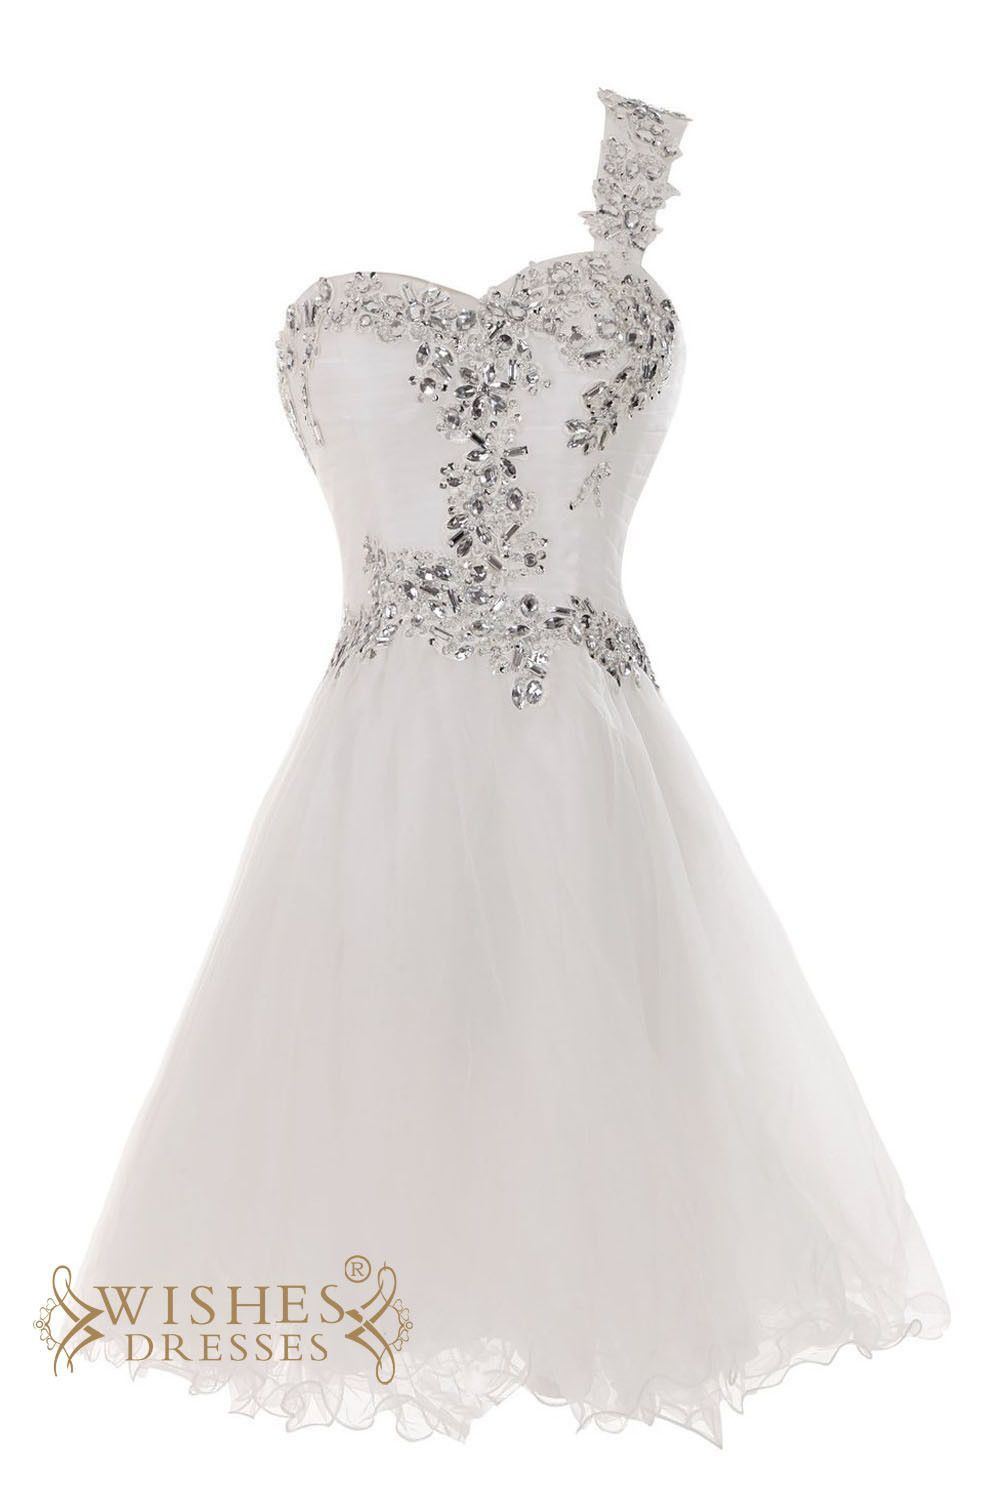 76904e9bde A-line formal Sweetheart organza bridal gown with beaded one strap. sparkle  rhinestones top with cute look